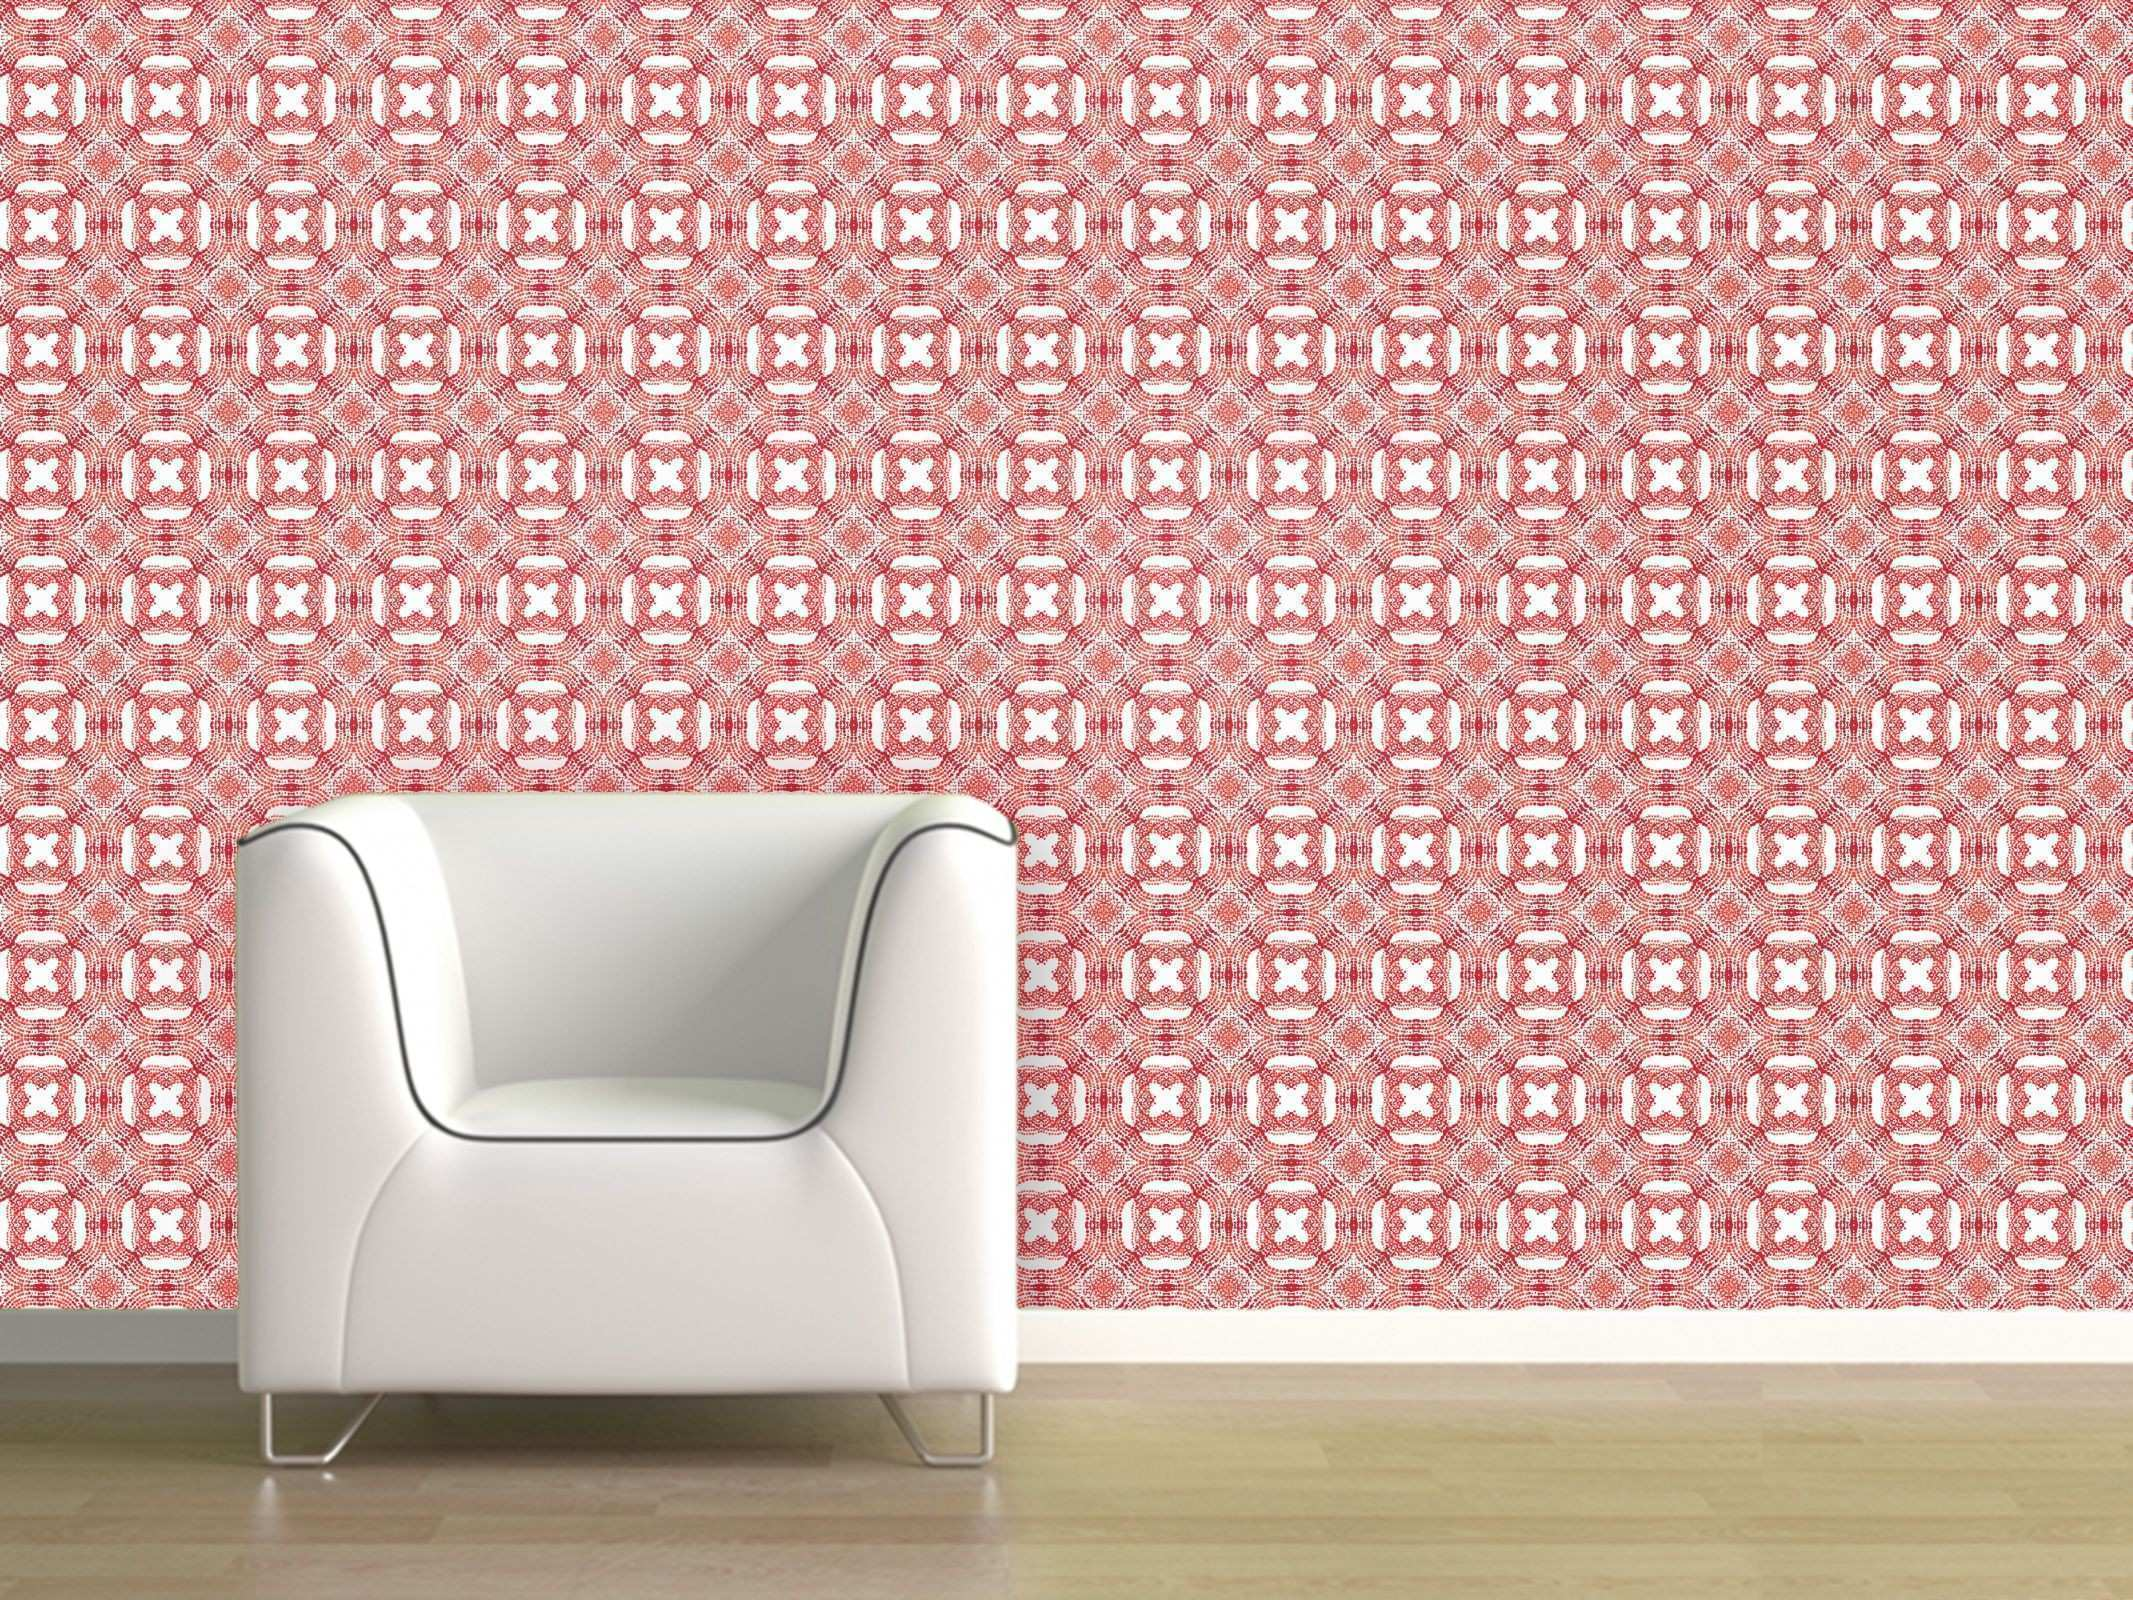 35 Best Removable Wallpapers Peel & Stick Temporary Wallpapers